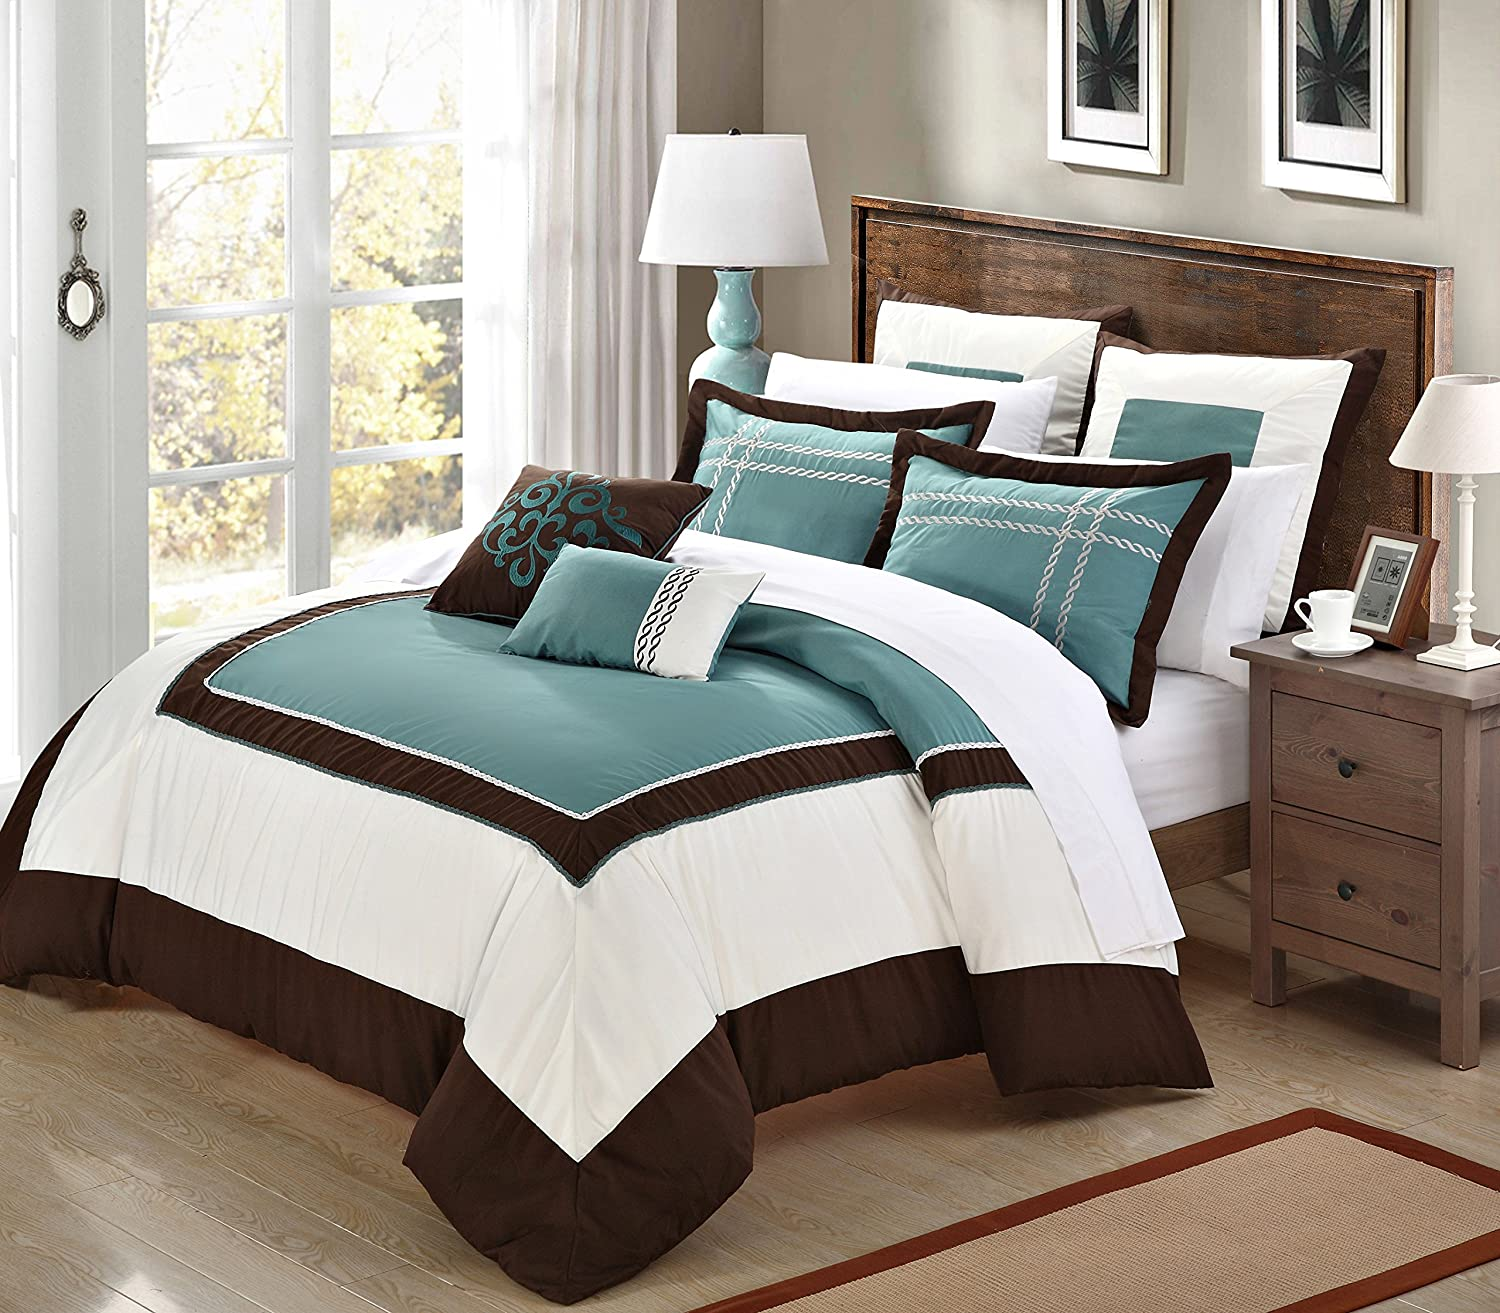 Brown And Teal Bedroom Teal And Brown Bedding